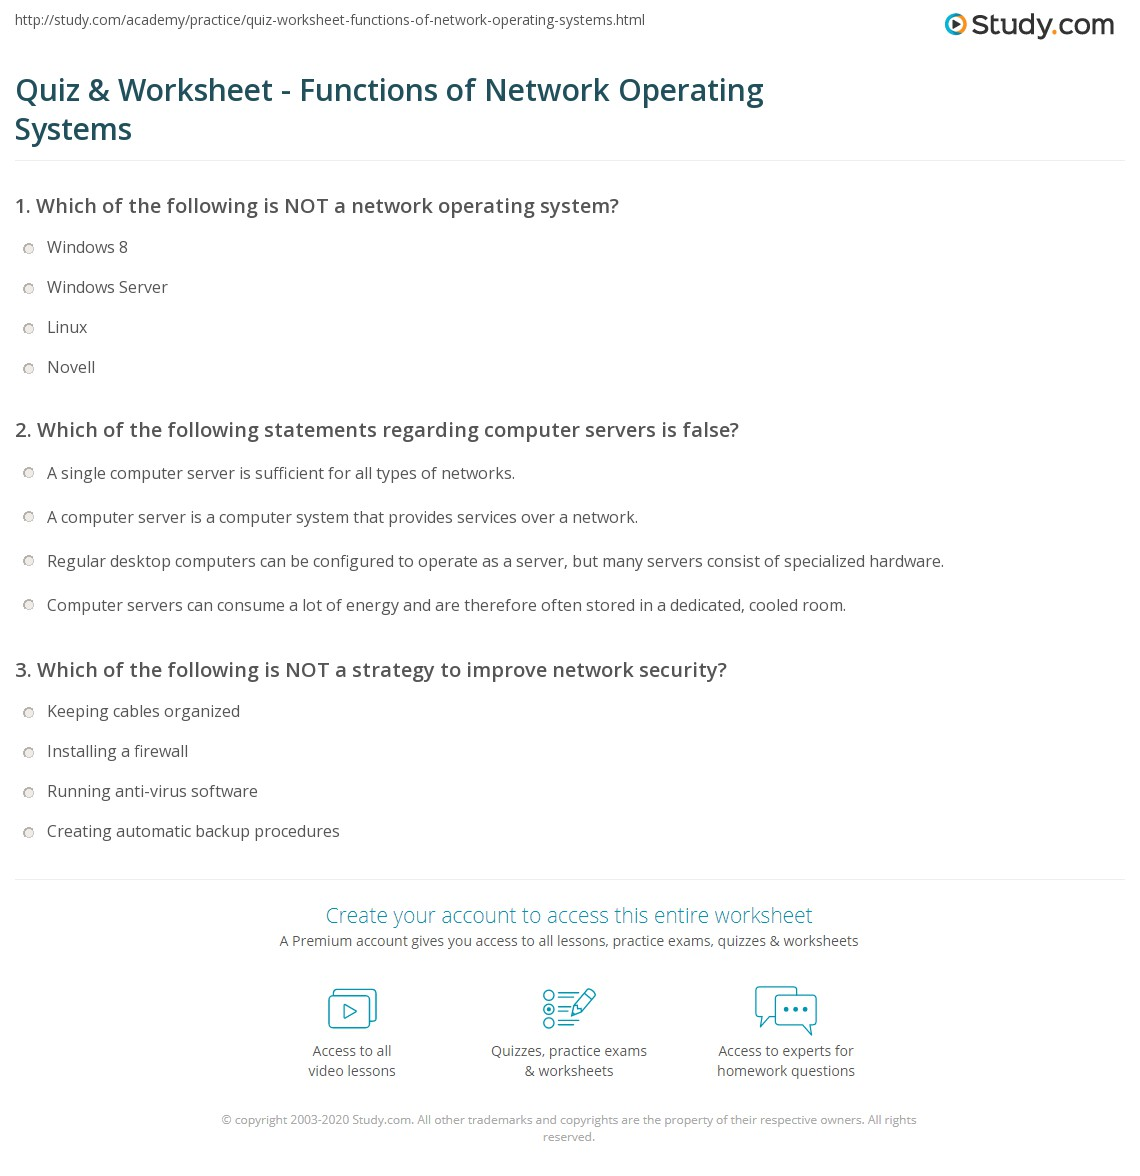 Quiz & Worksheet - Functions of Network Operating Systems | Study.com